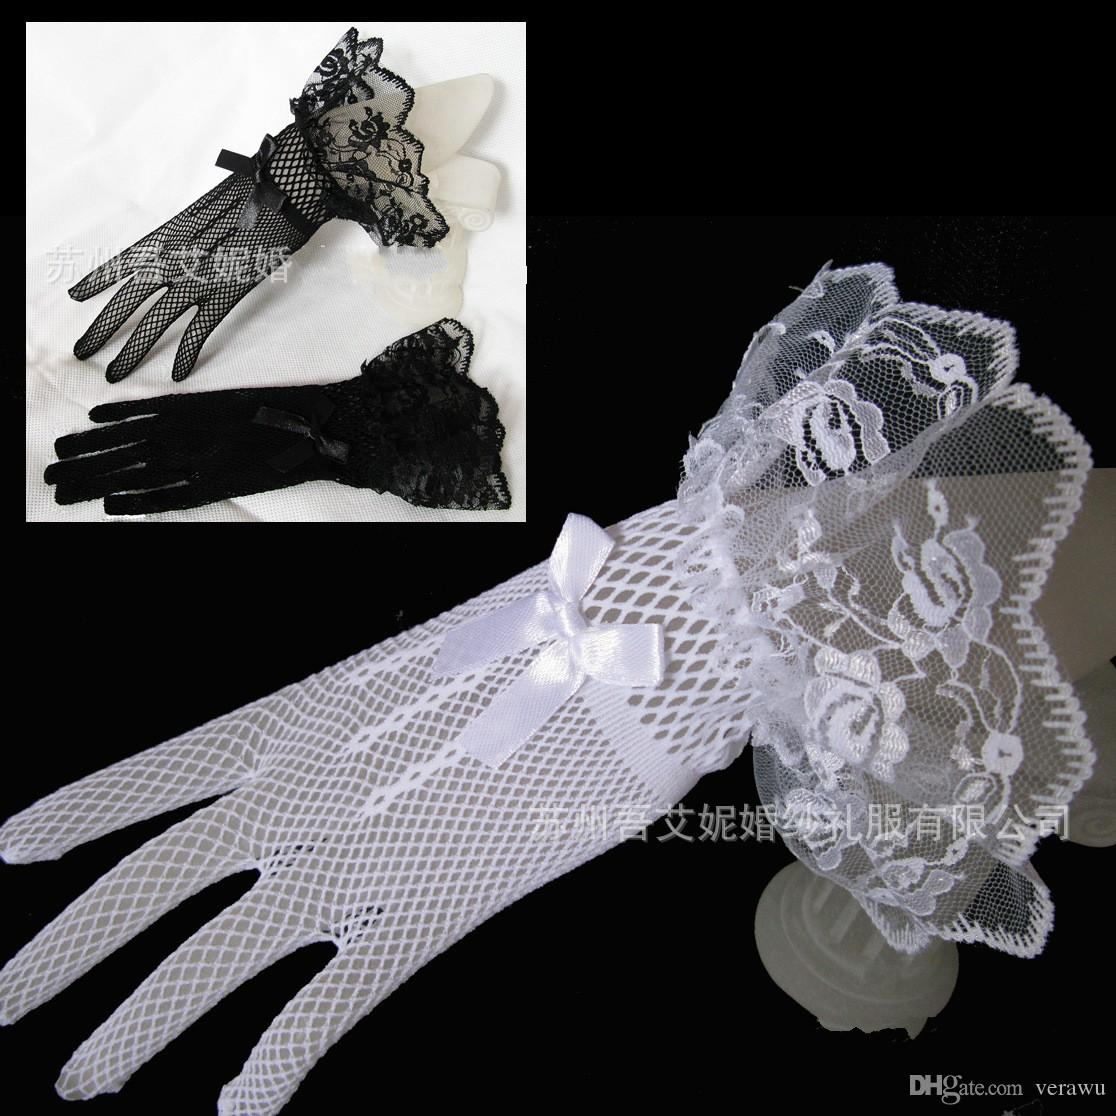 Black gloves with bow - Black White Vintage Lace Tulle Elegant Short Bridal Gloves With Bow Sheer Women Wedding Party Gloves Full Finger Bridal Accessories Cheap Black Gloves Tulle